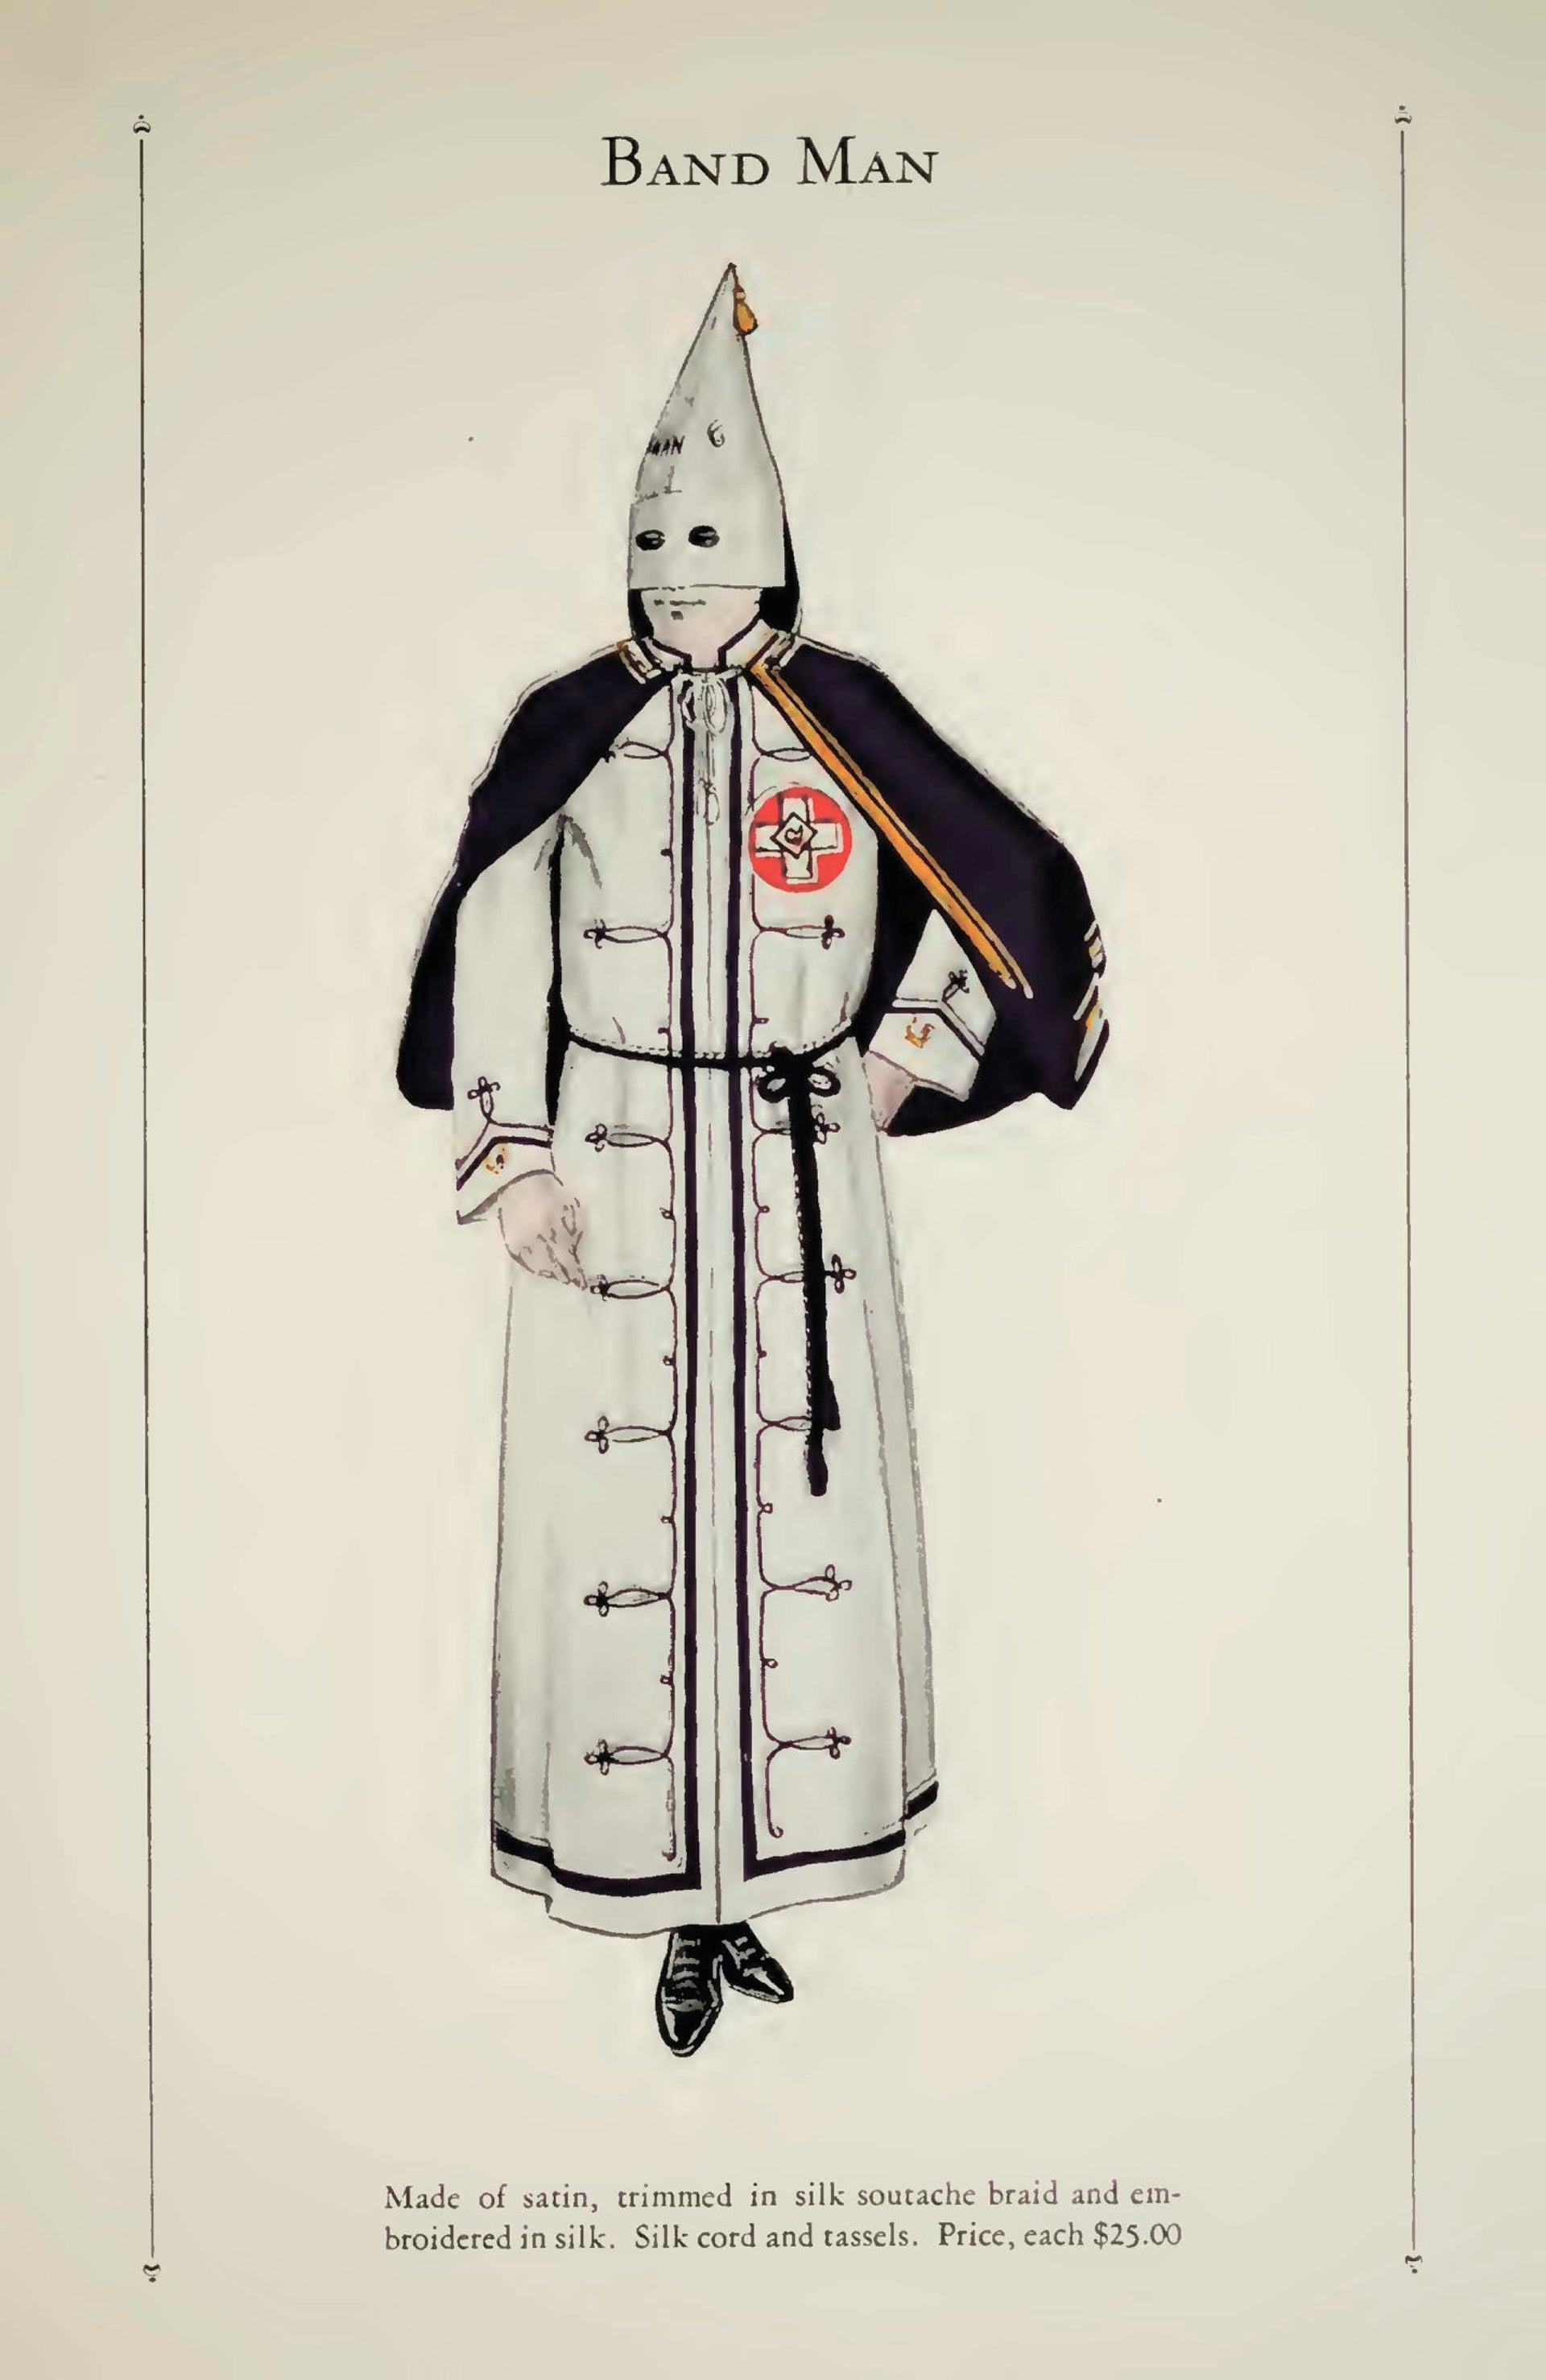 """From the """"Catalogue of Official Robes and Banners: Knights of the Ku Klux Klan"""" (1925)."""